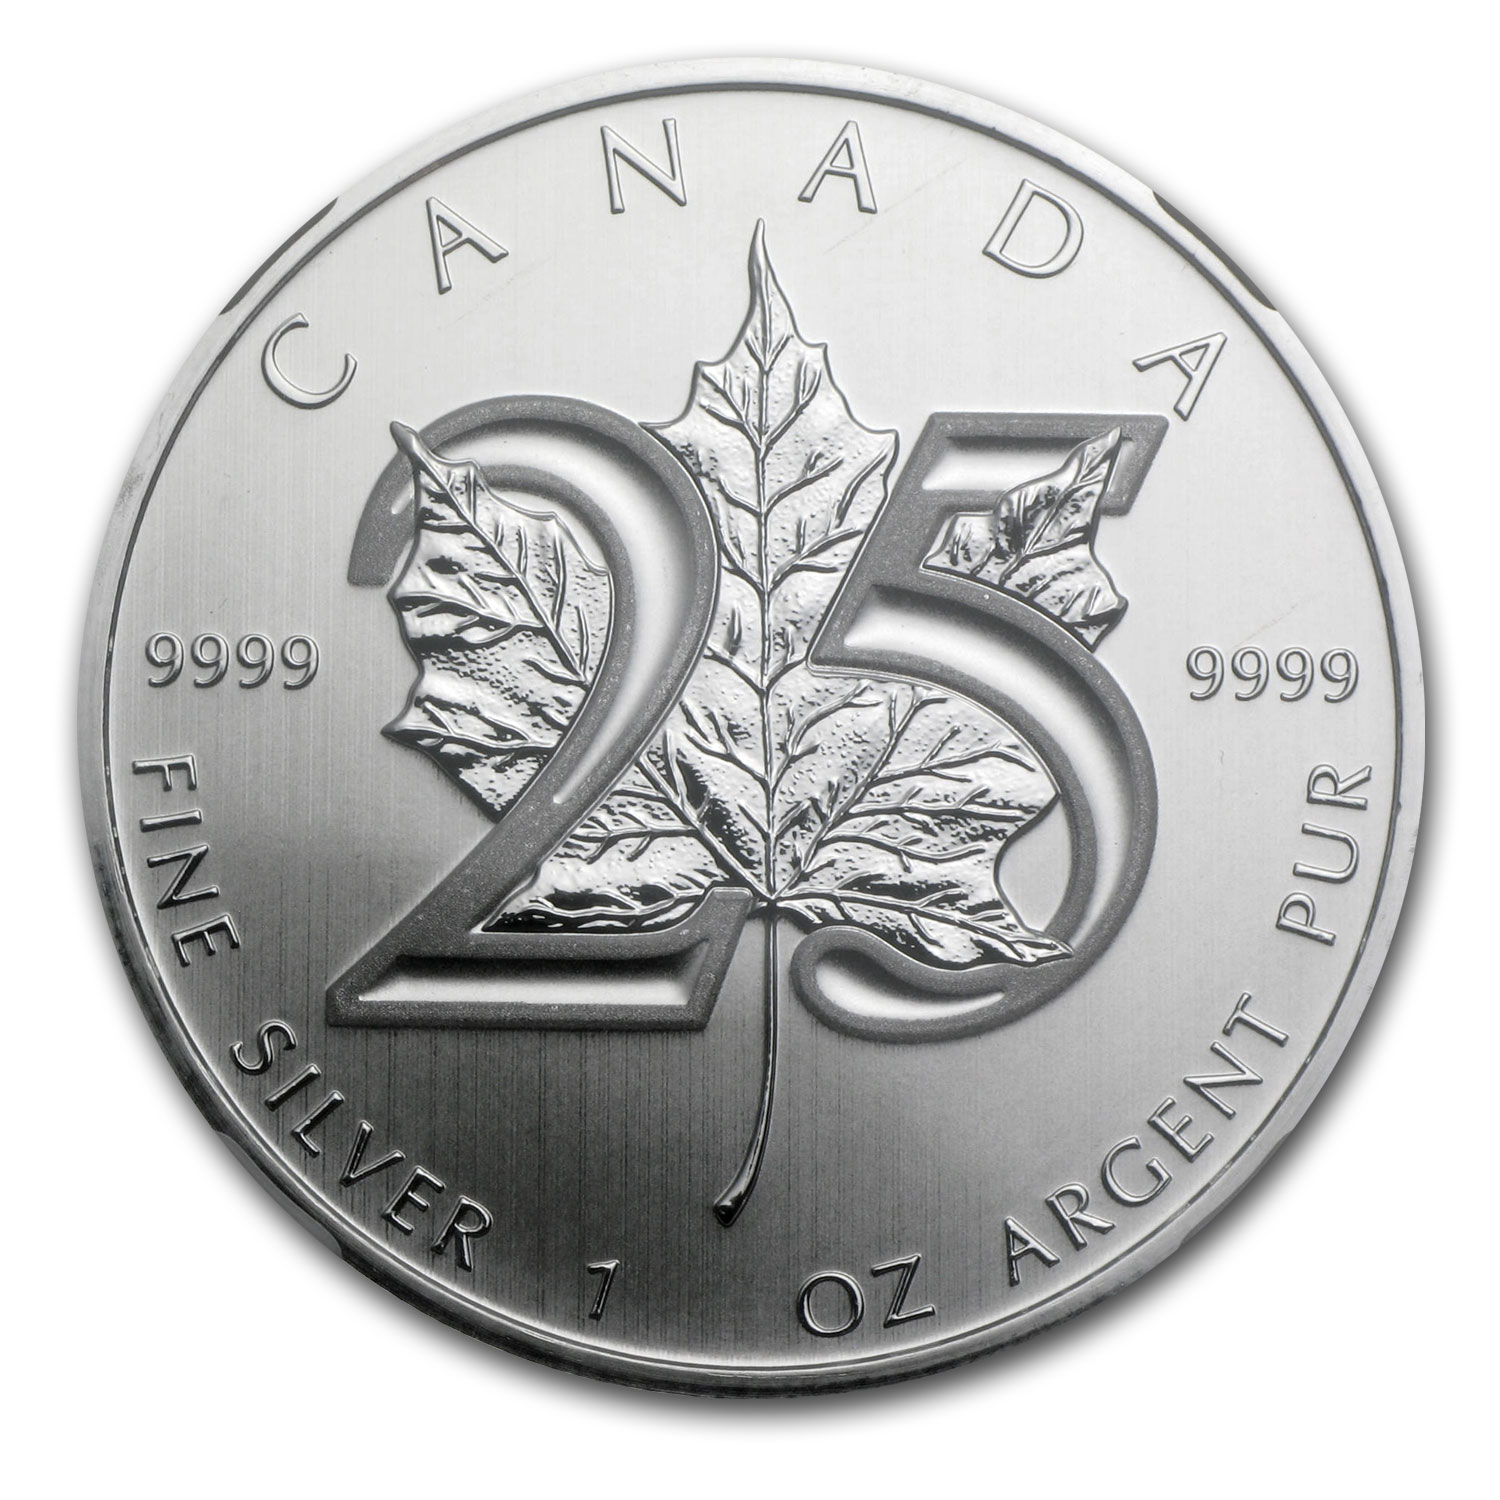 2013 1 oz Silver Canadian Maple Leaf - 25th Anniv. Gem UN NGC -ER